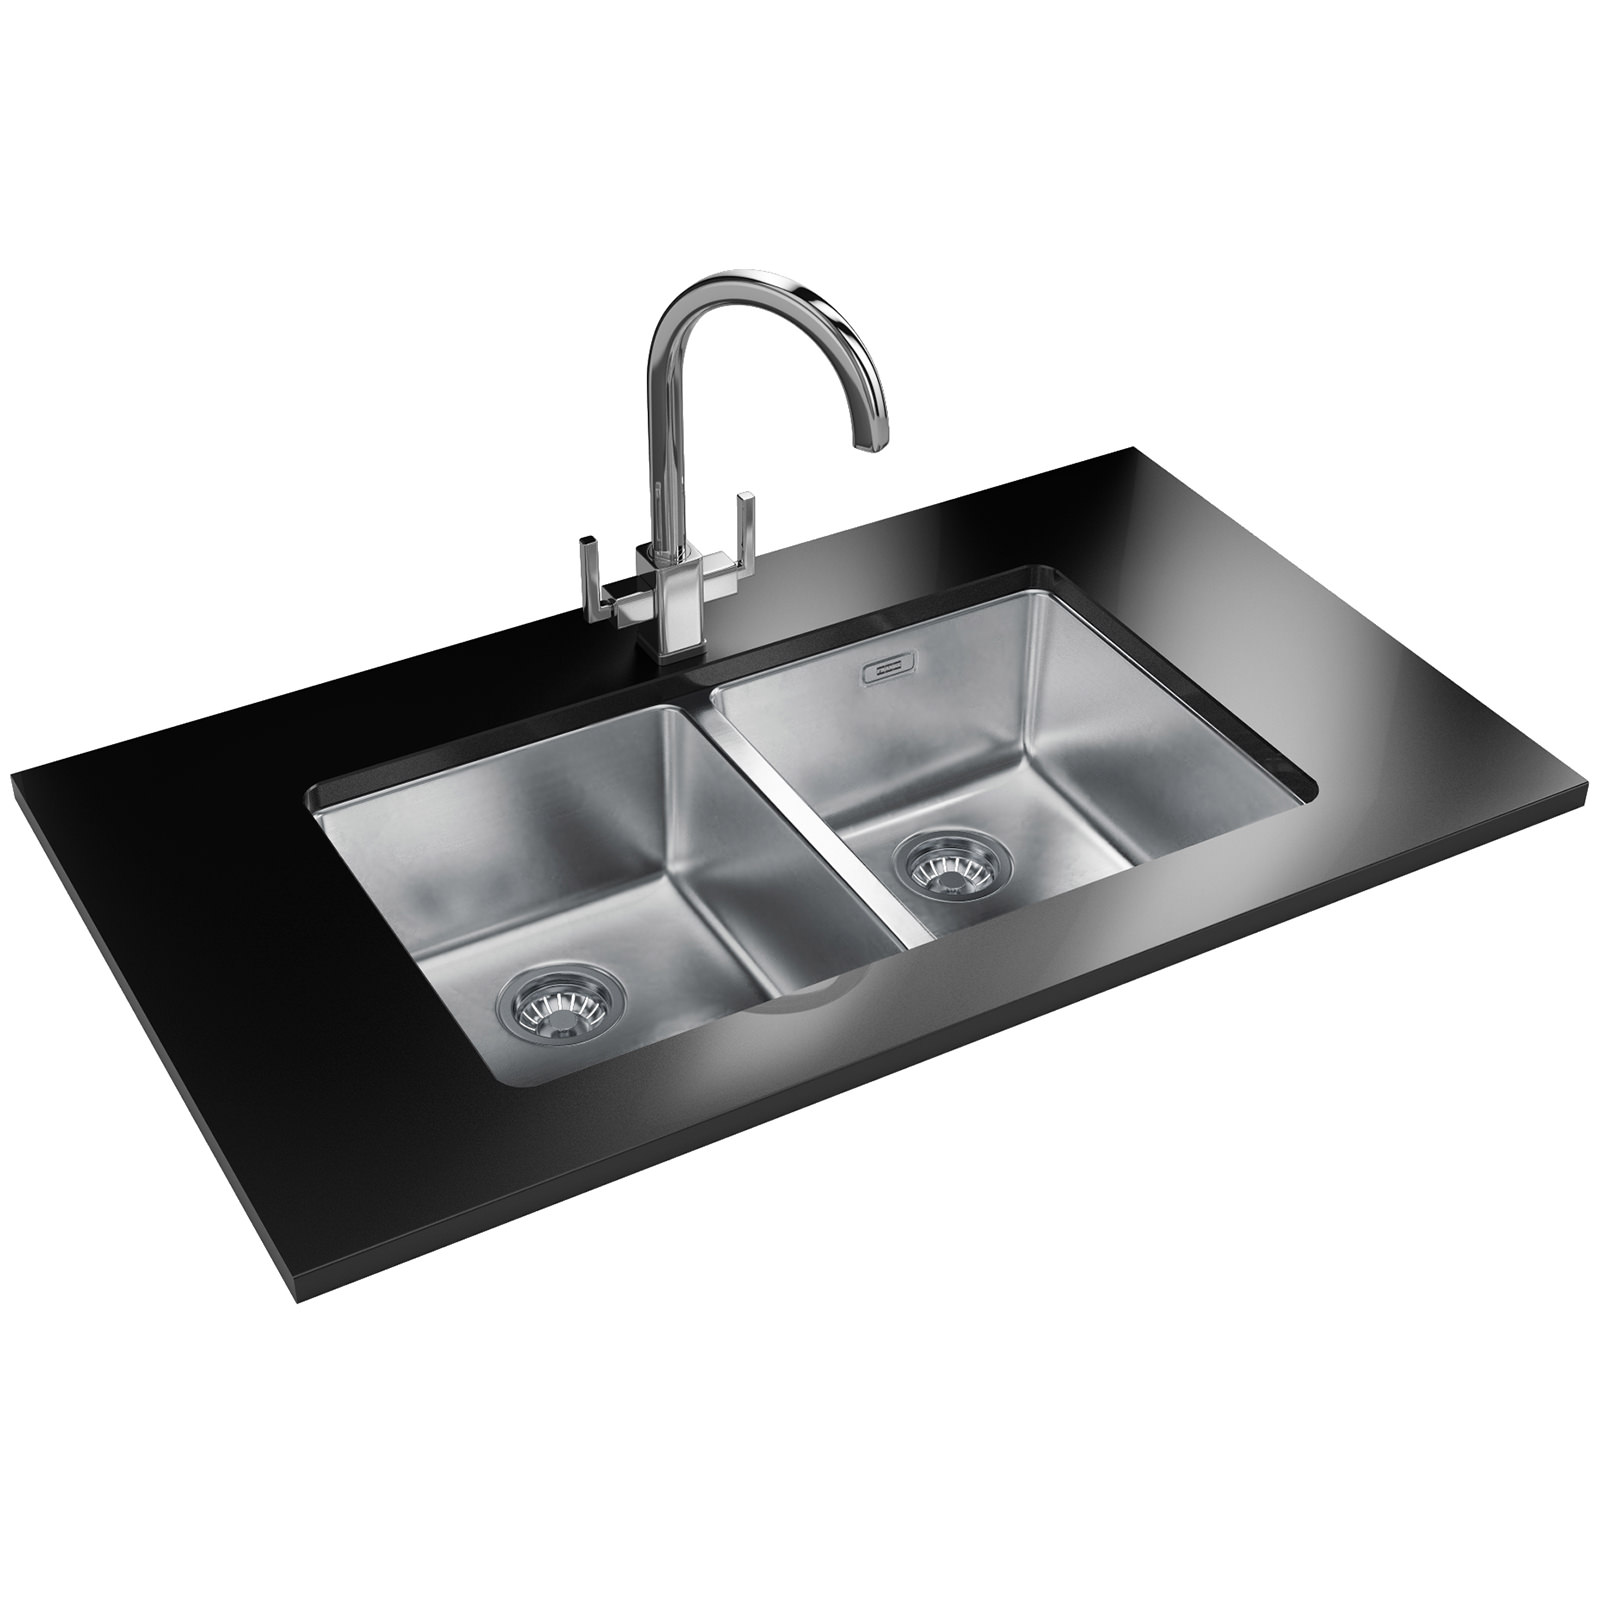 Franke Kubus KBX 120 34-34 Stainless Steel 2 Bowl Undermount Sink ...